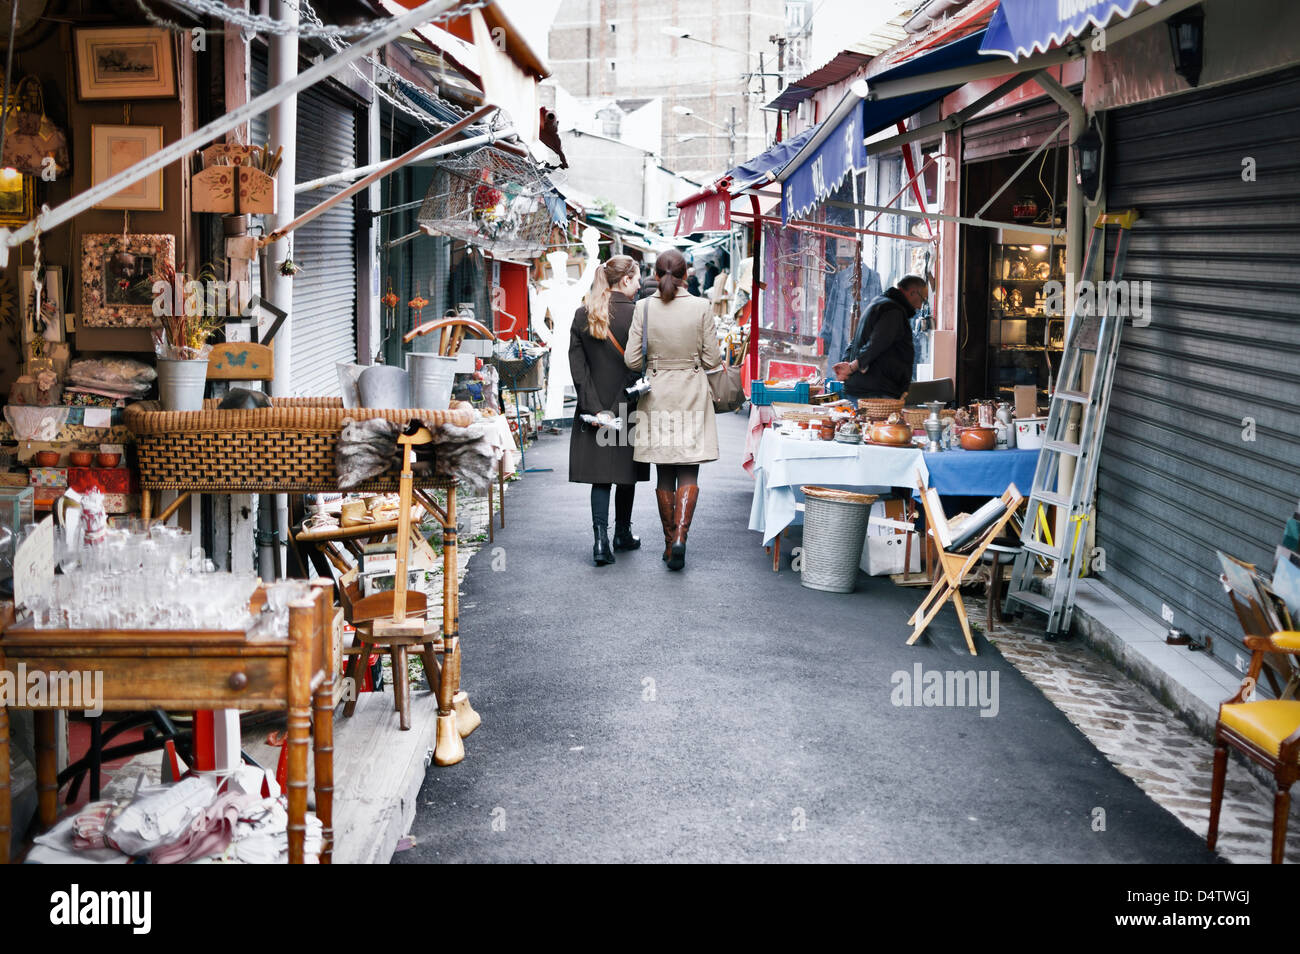 March aux puces flea market at st ouen near to clignancourt in the stock photo royalty free - Marche au puce paris vetement ...